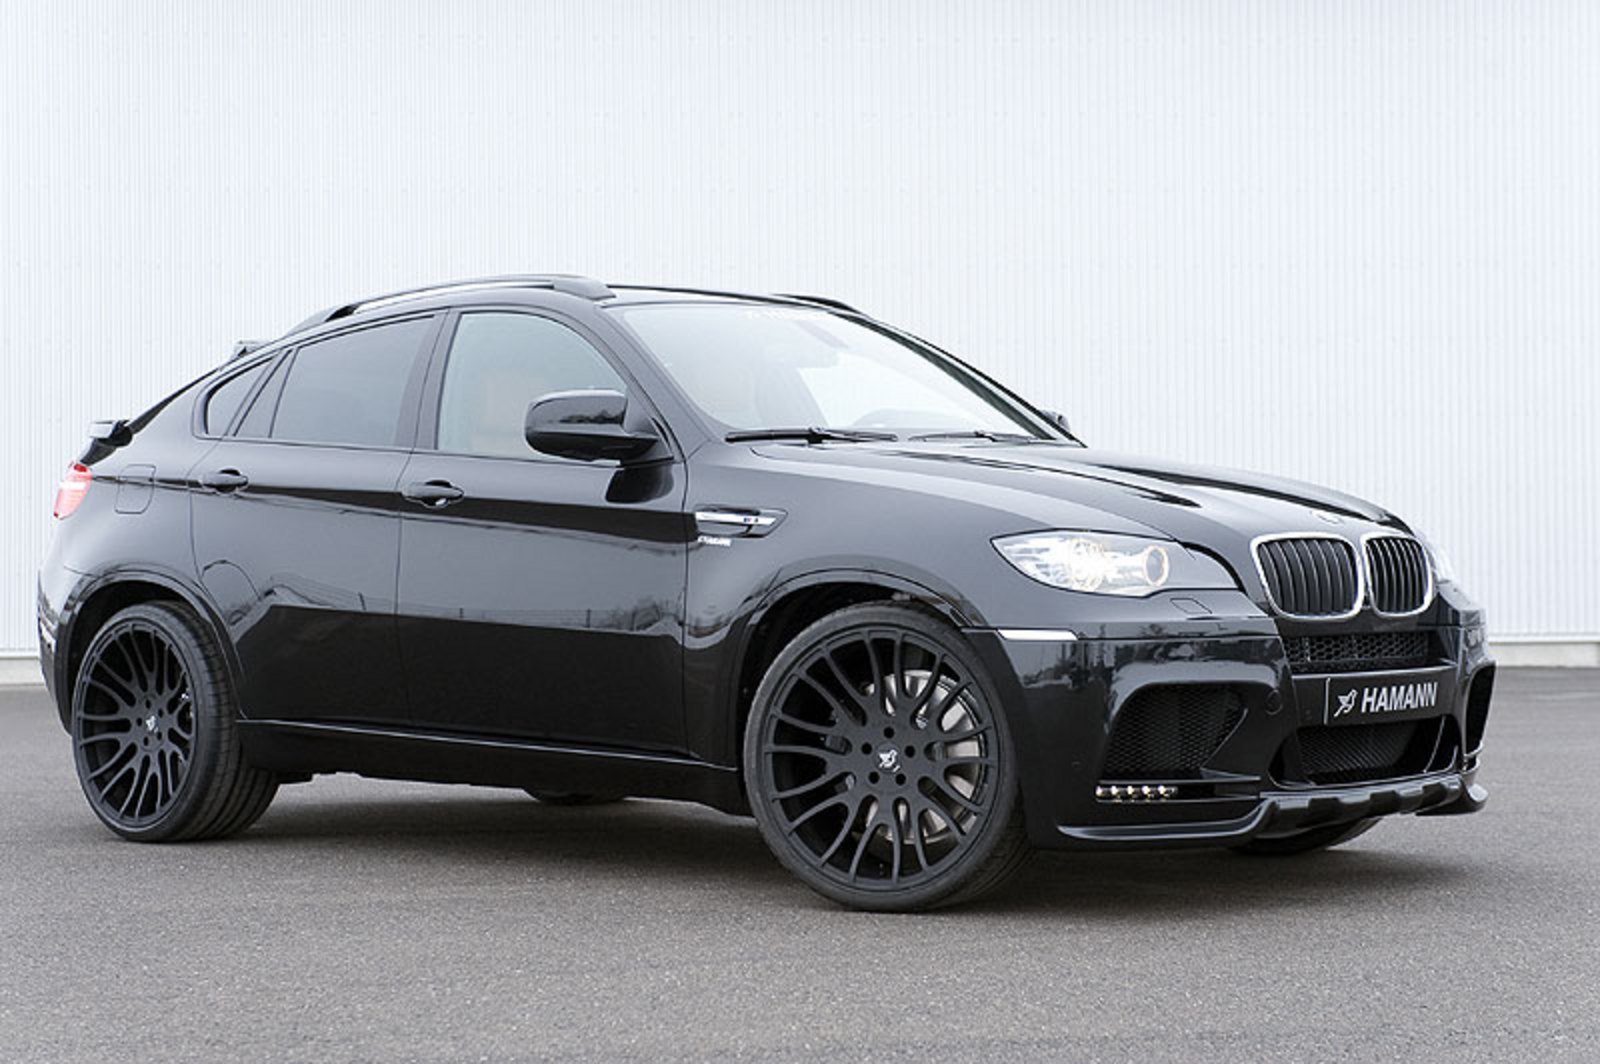 2010 bmw x6m by hamann review top speed. Black Bedroom Furniture Sets. Home Design Ideas